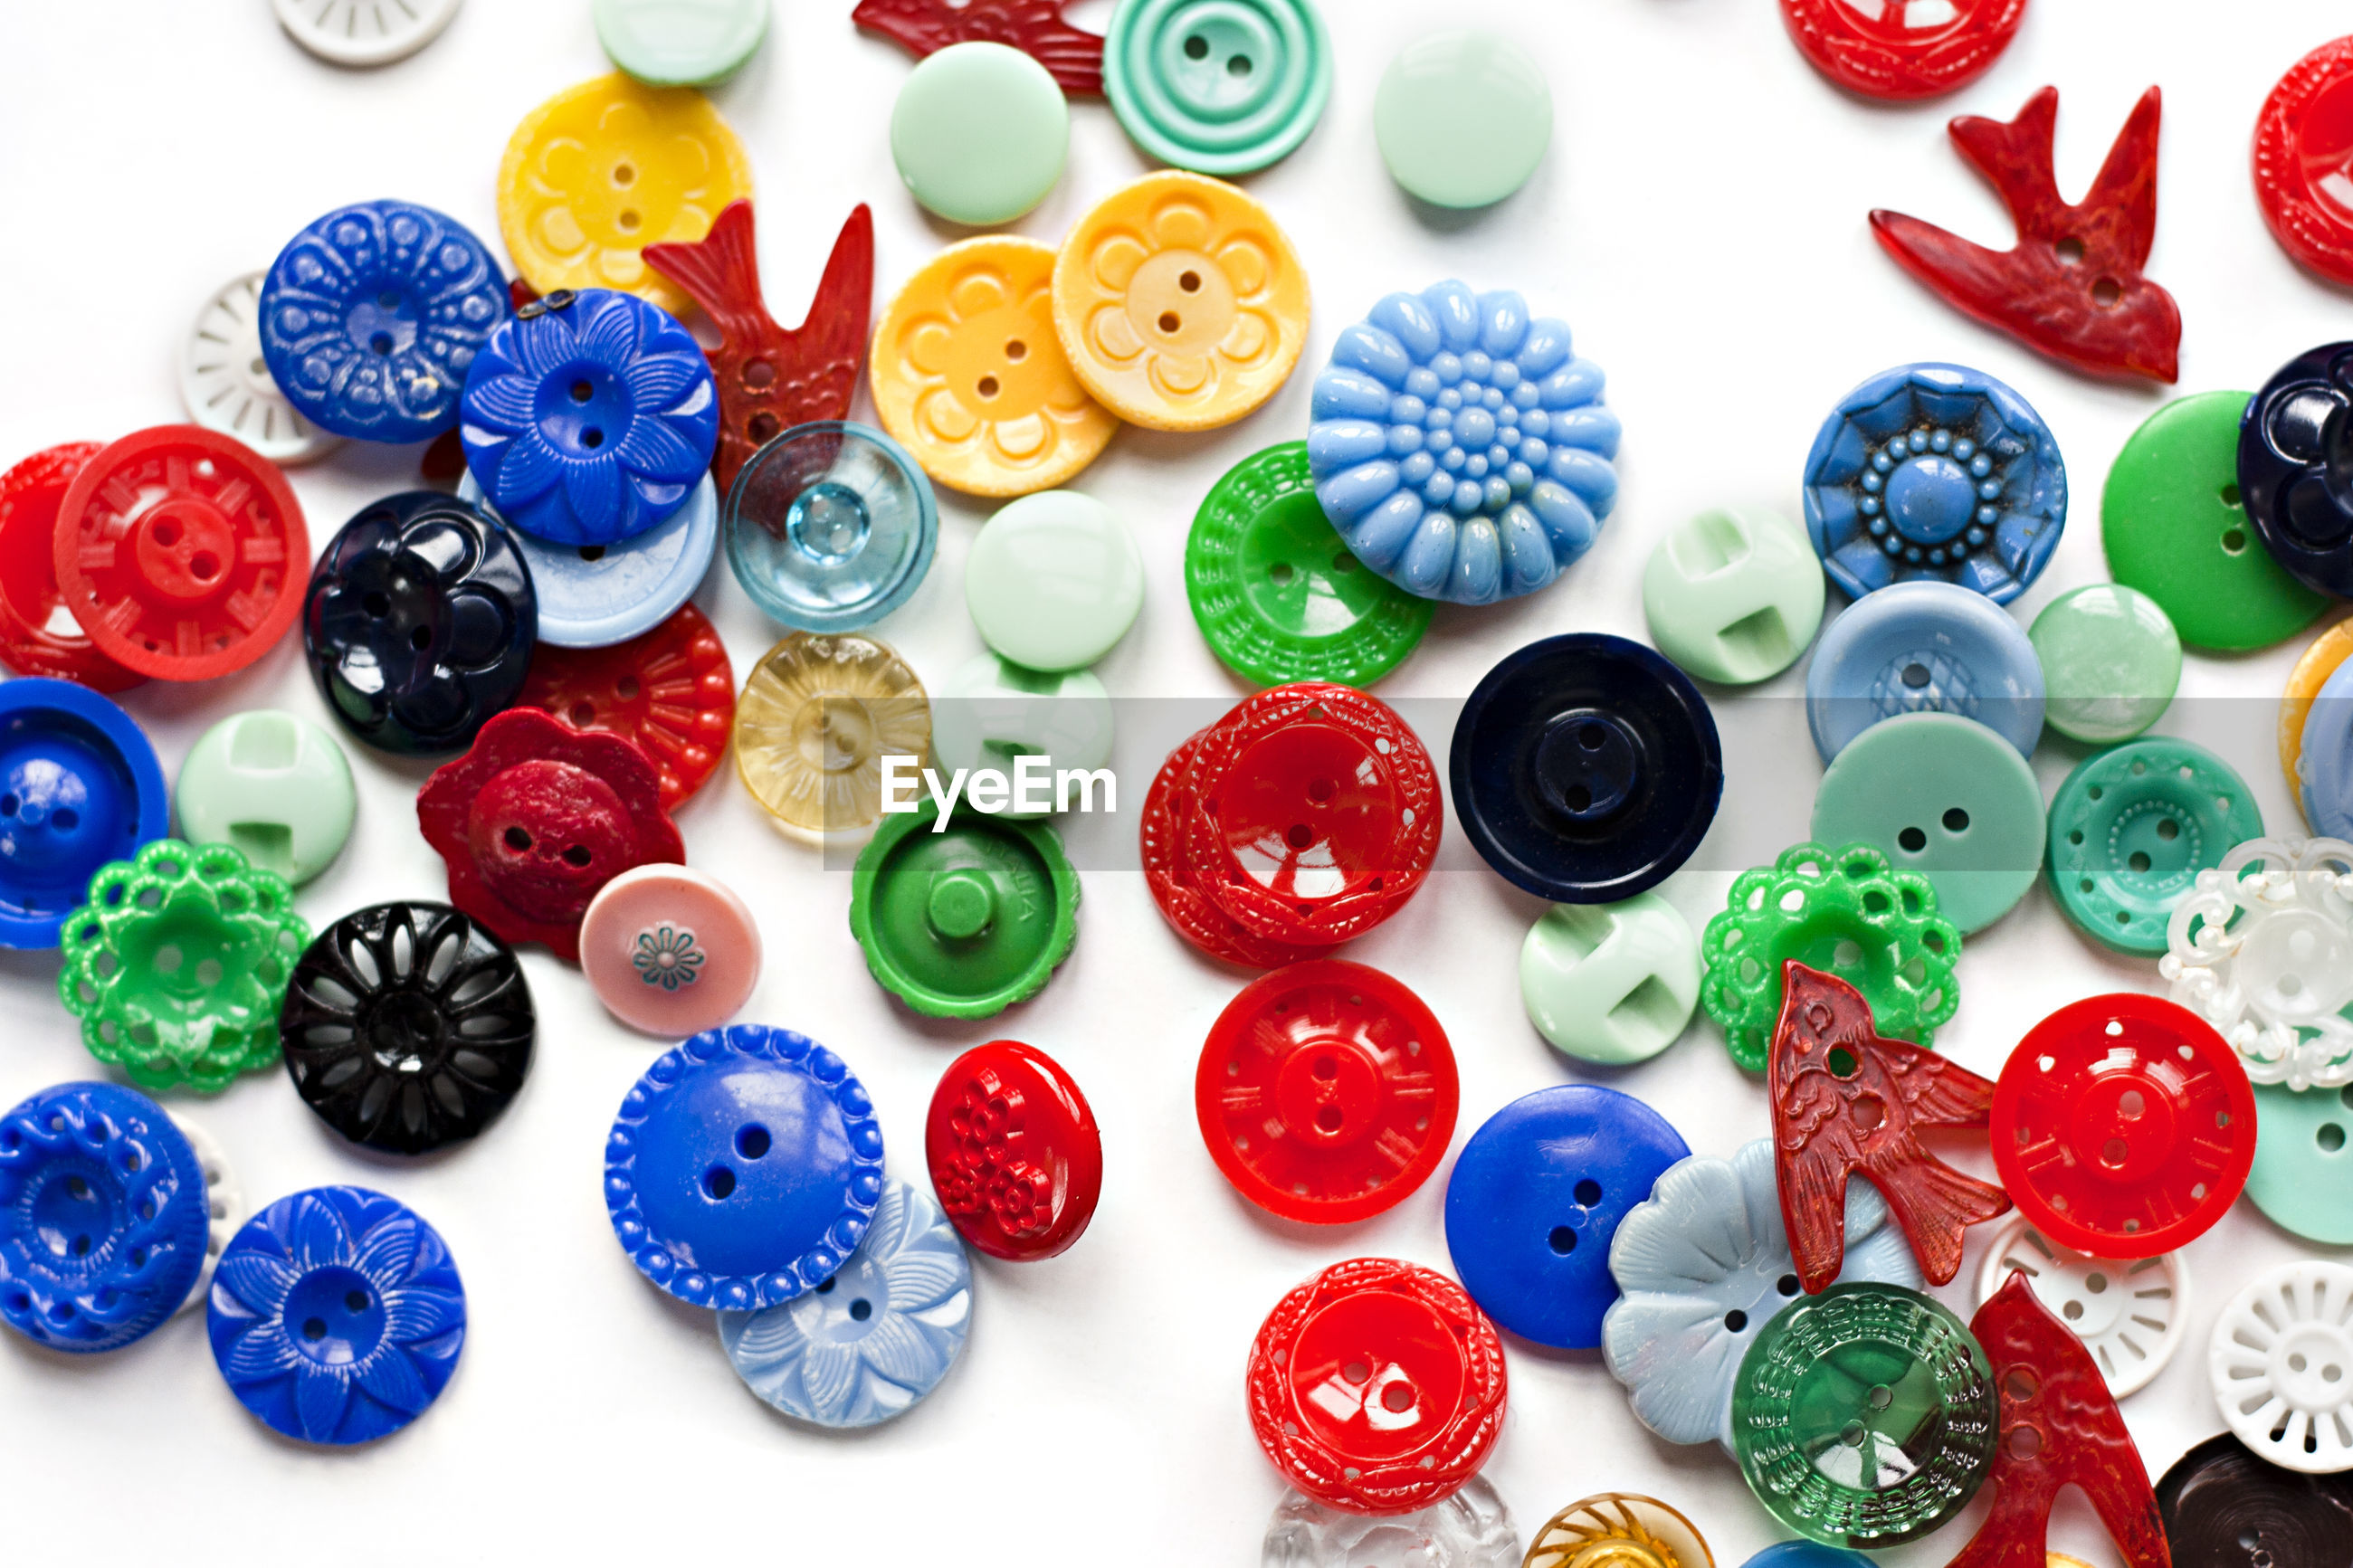 Full frame shot of colorful buttons on white background